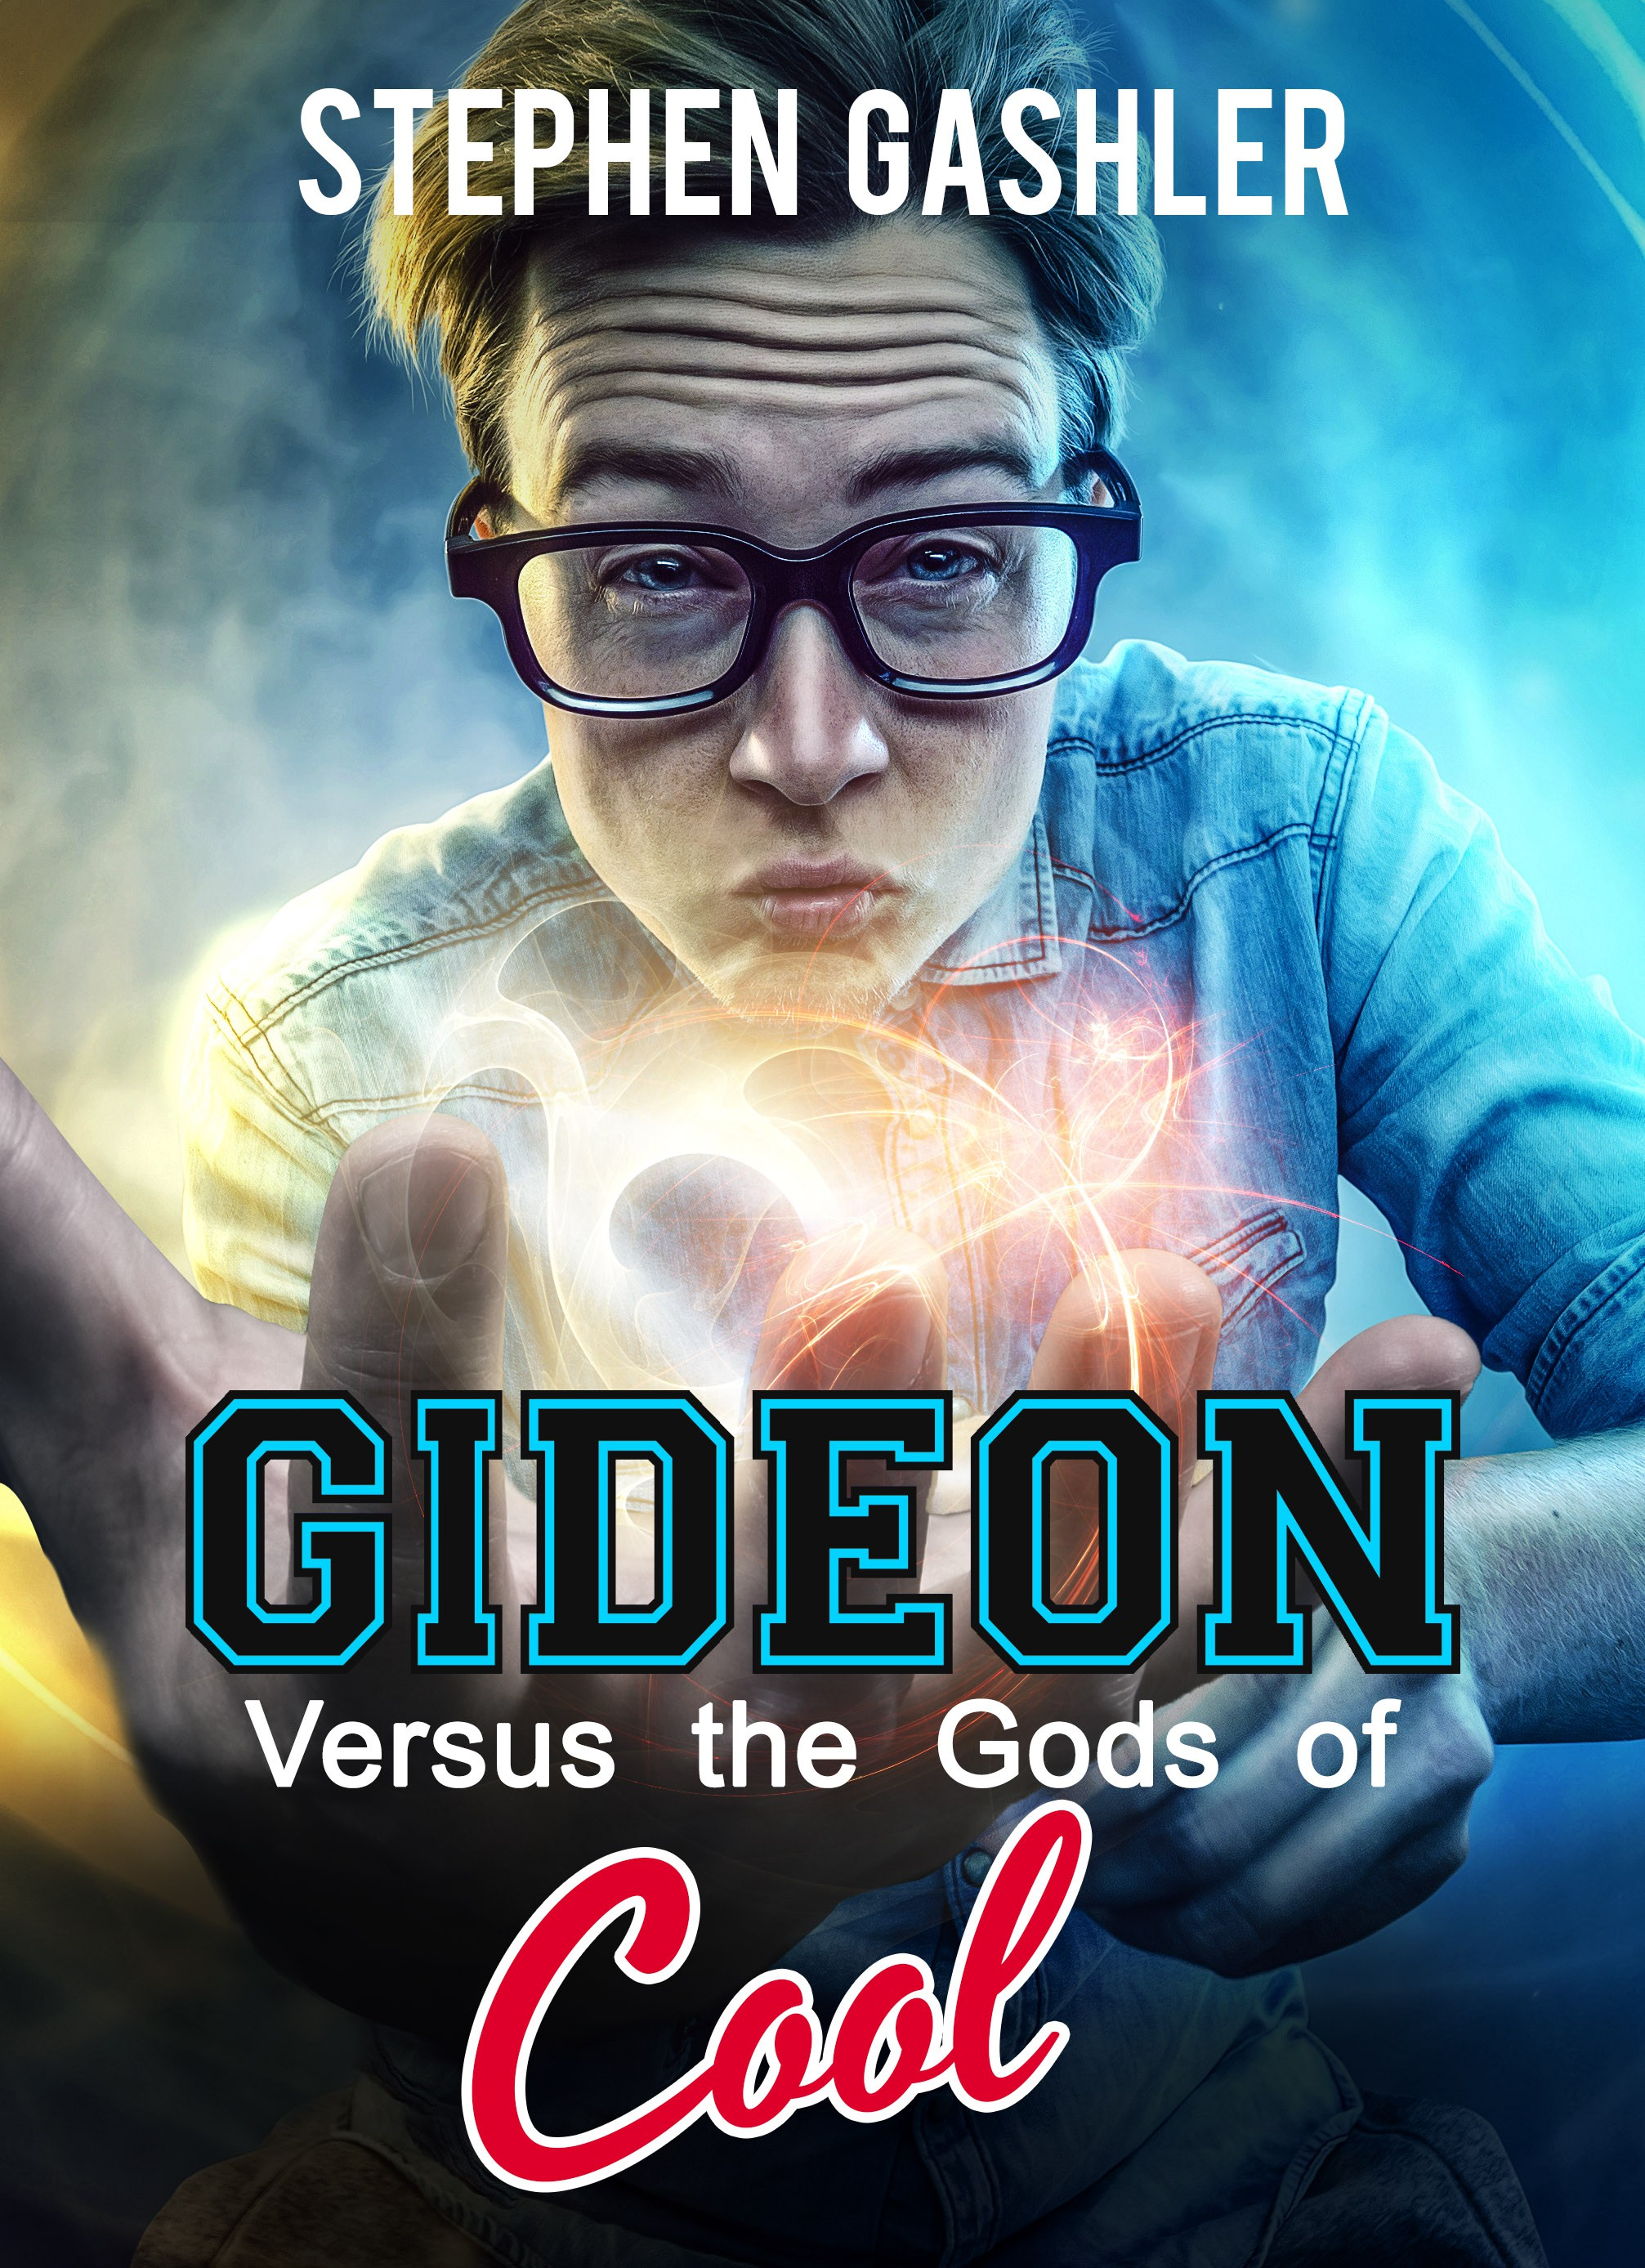 Gideon Versus the Gods of Cool (Young Adult Urban Fantasy novel)